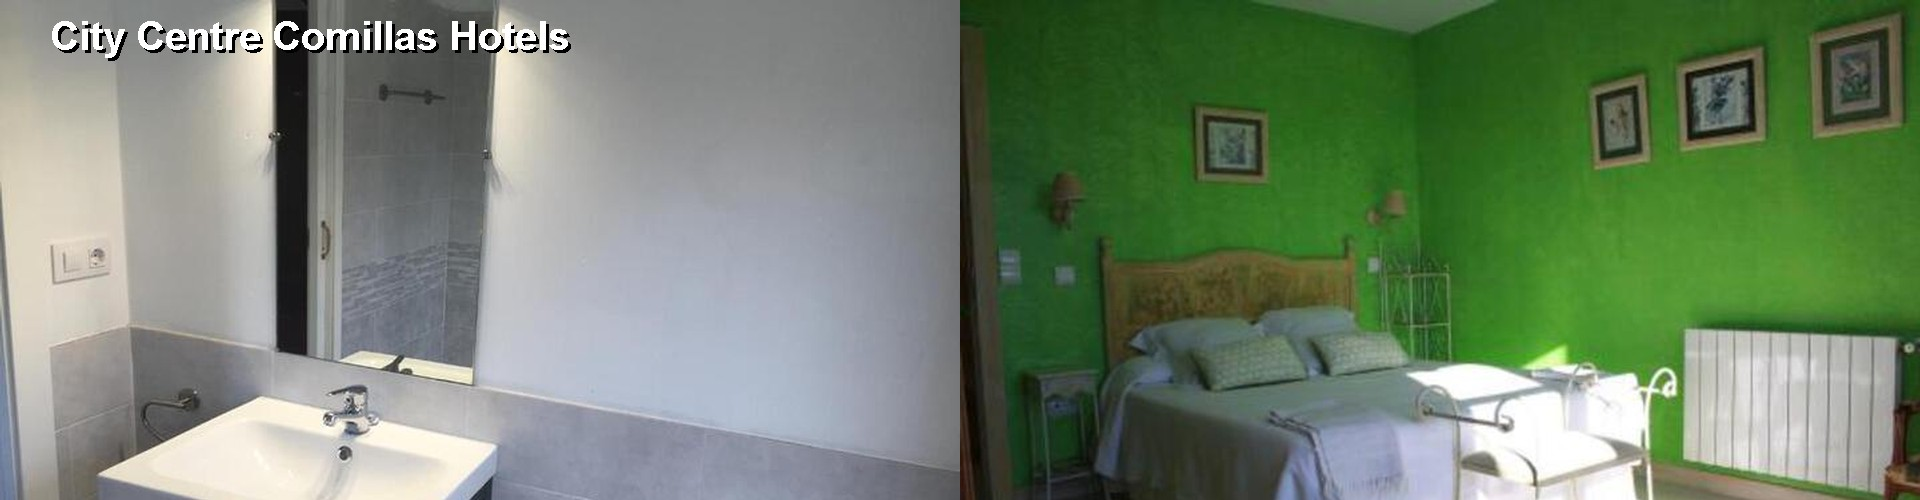 5 Best Hotels near City Centre Comillas